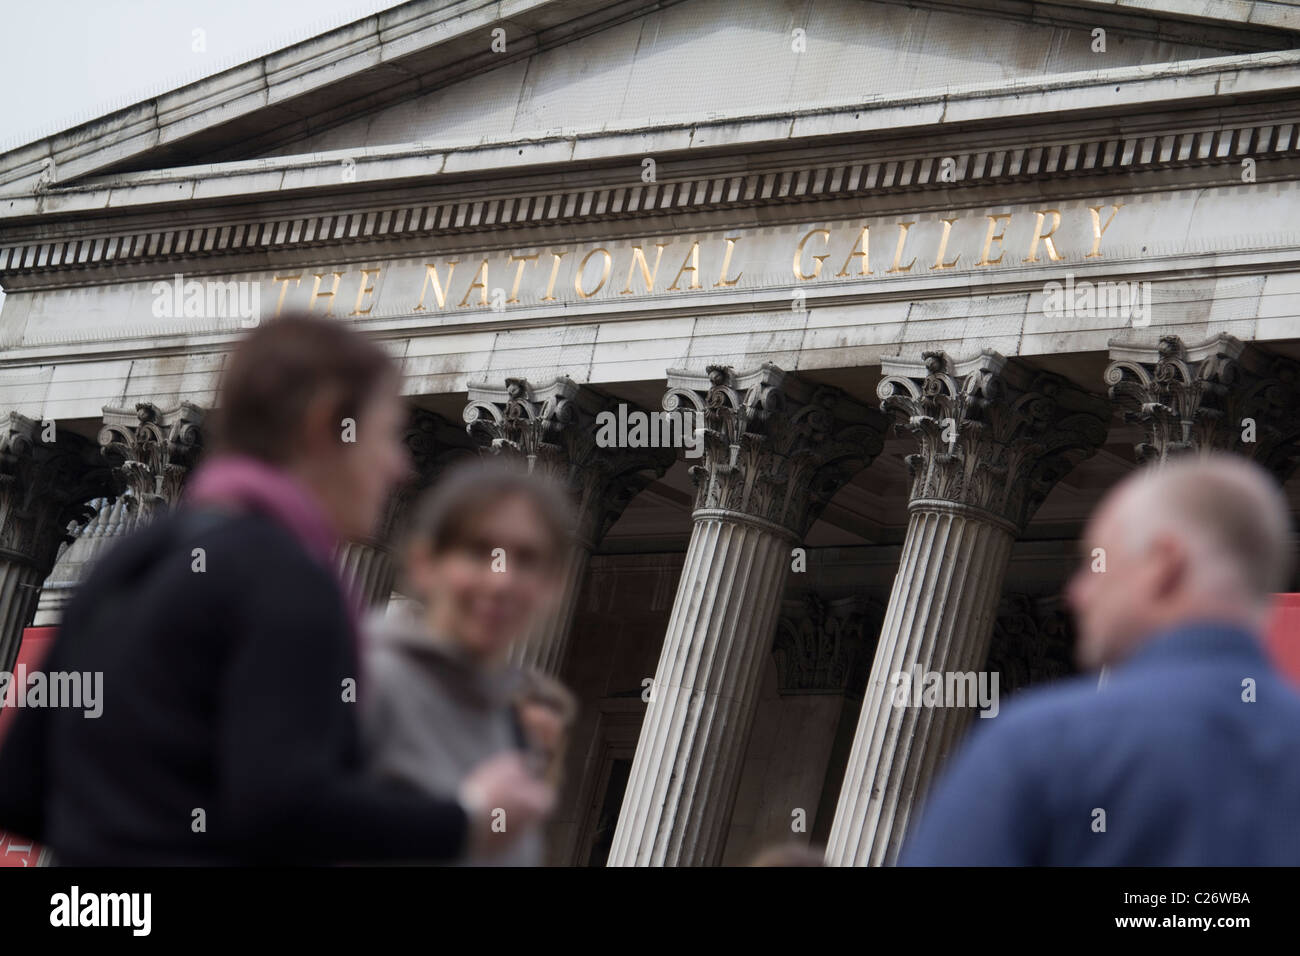 The National Gallery London Stock Photo